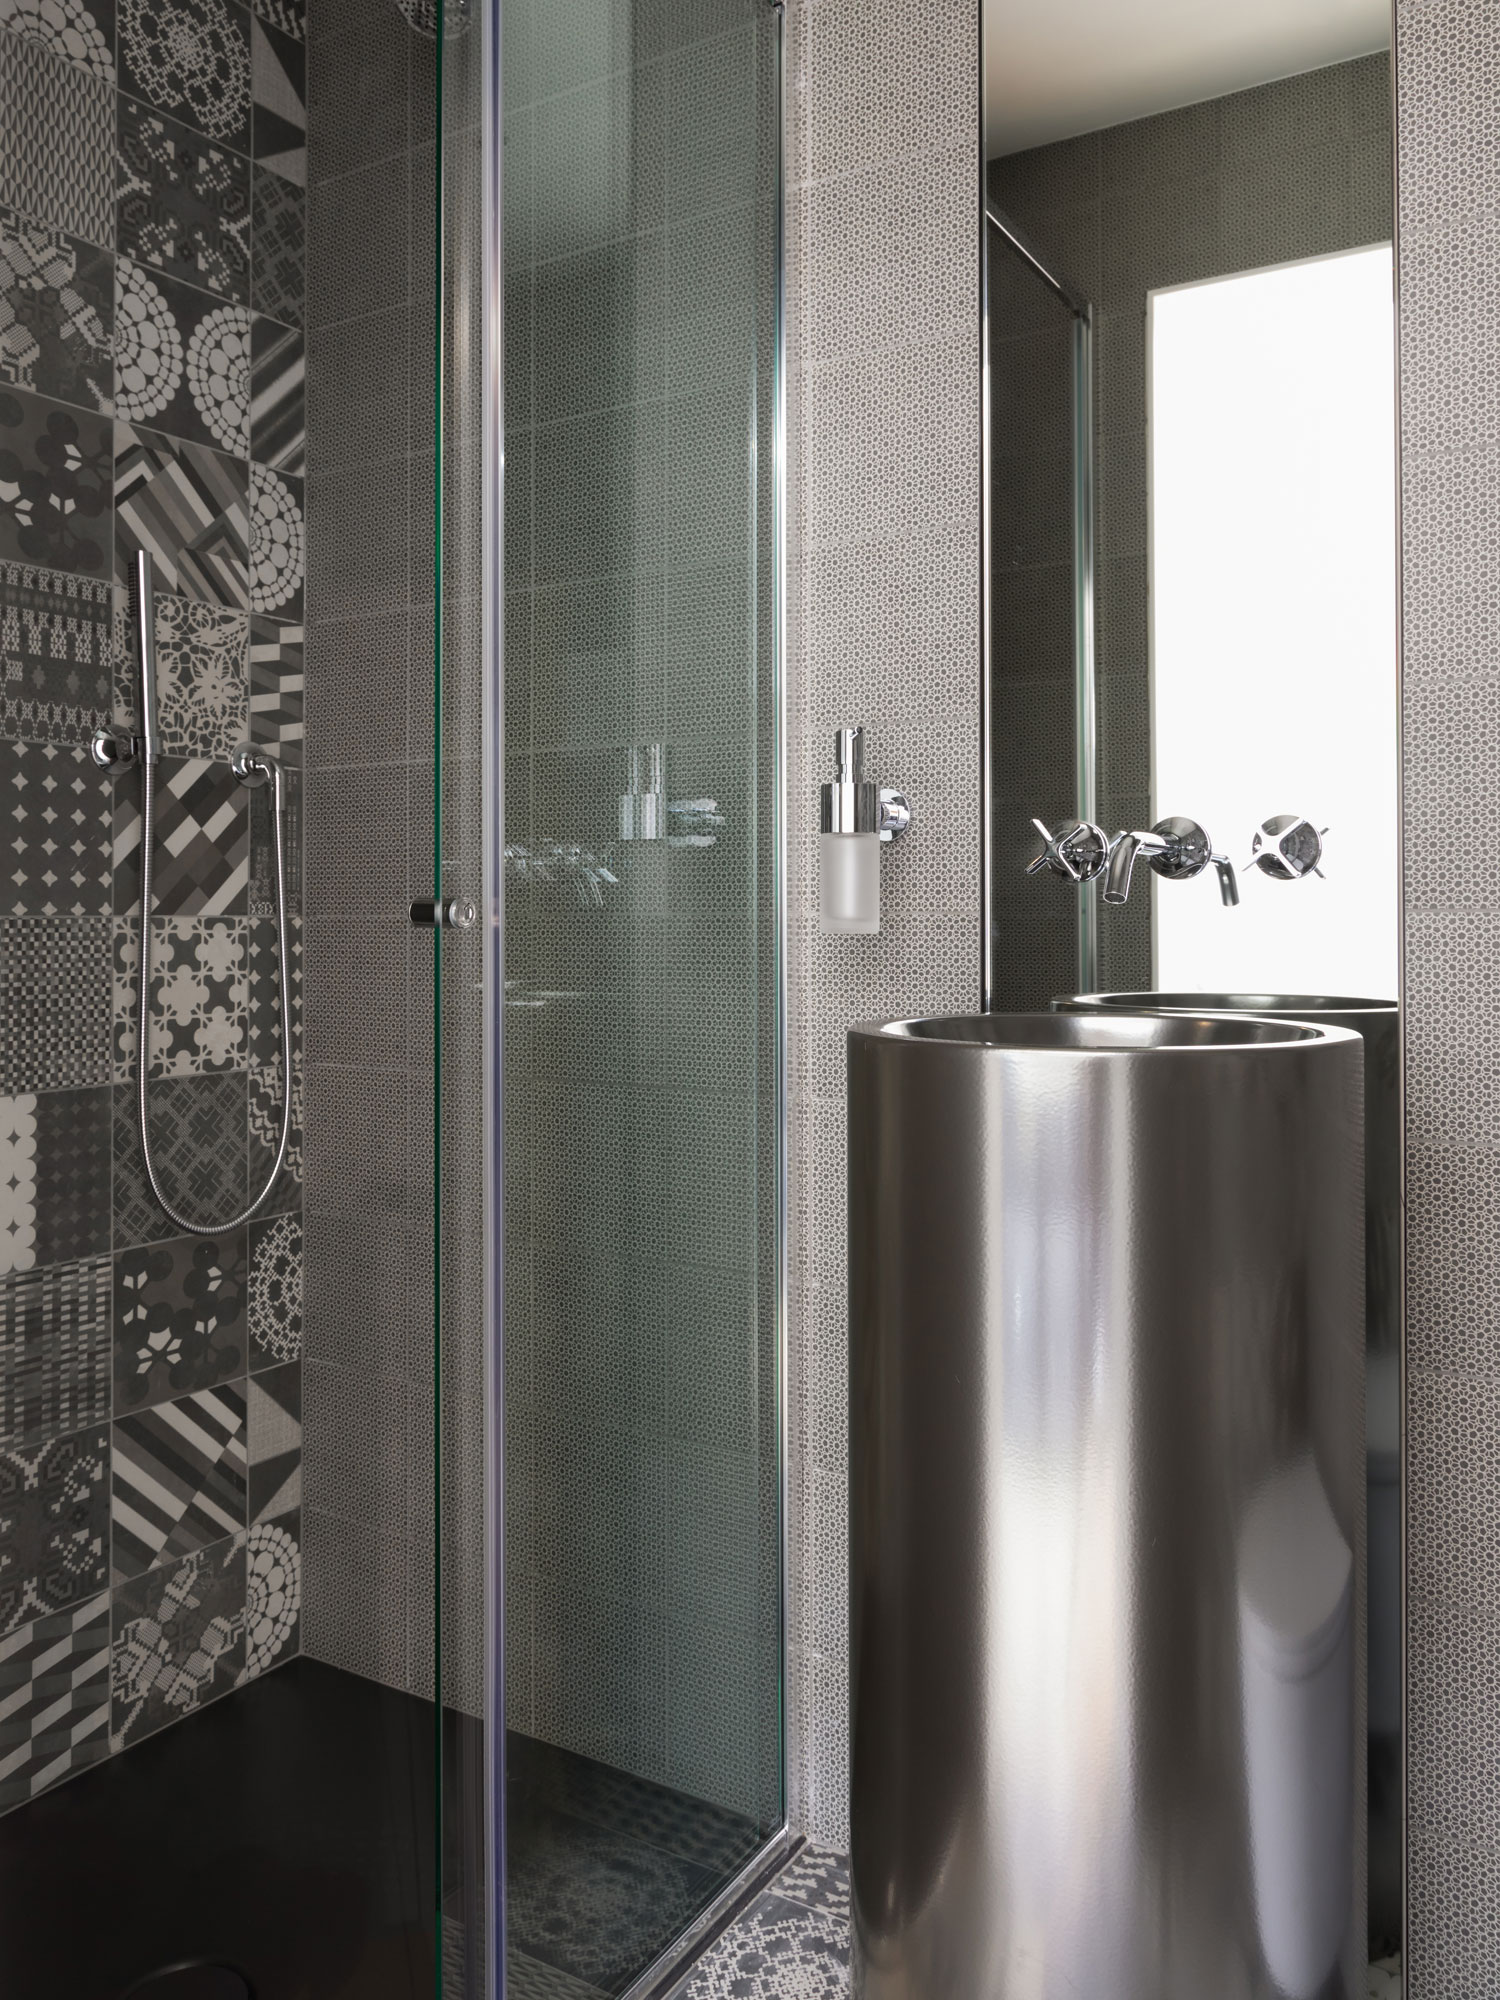 West One Bathrooms Inspiration Turning a Spare Room into a Large Bathroom image2